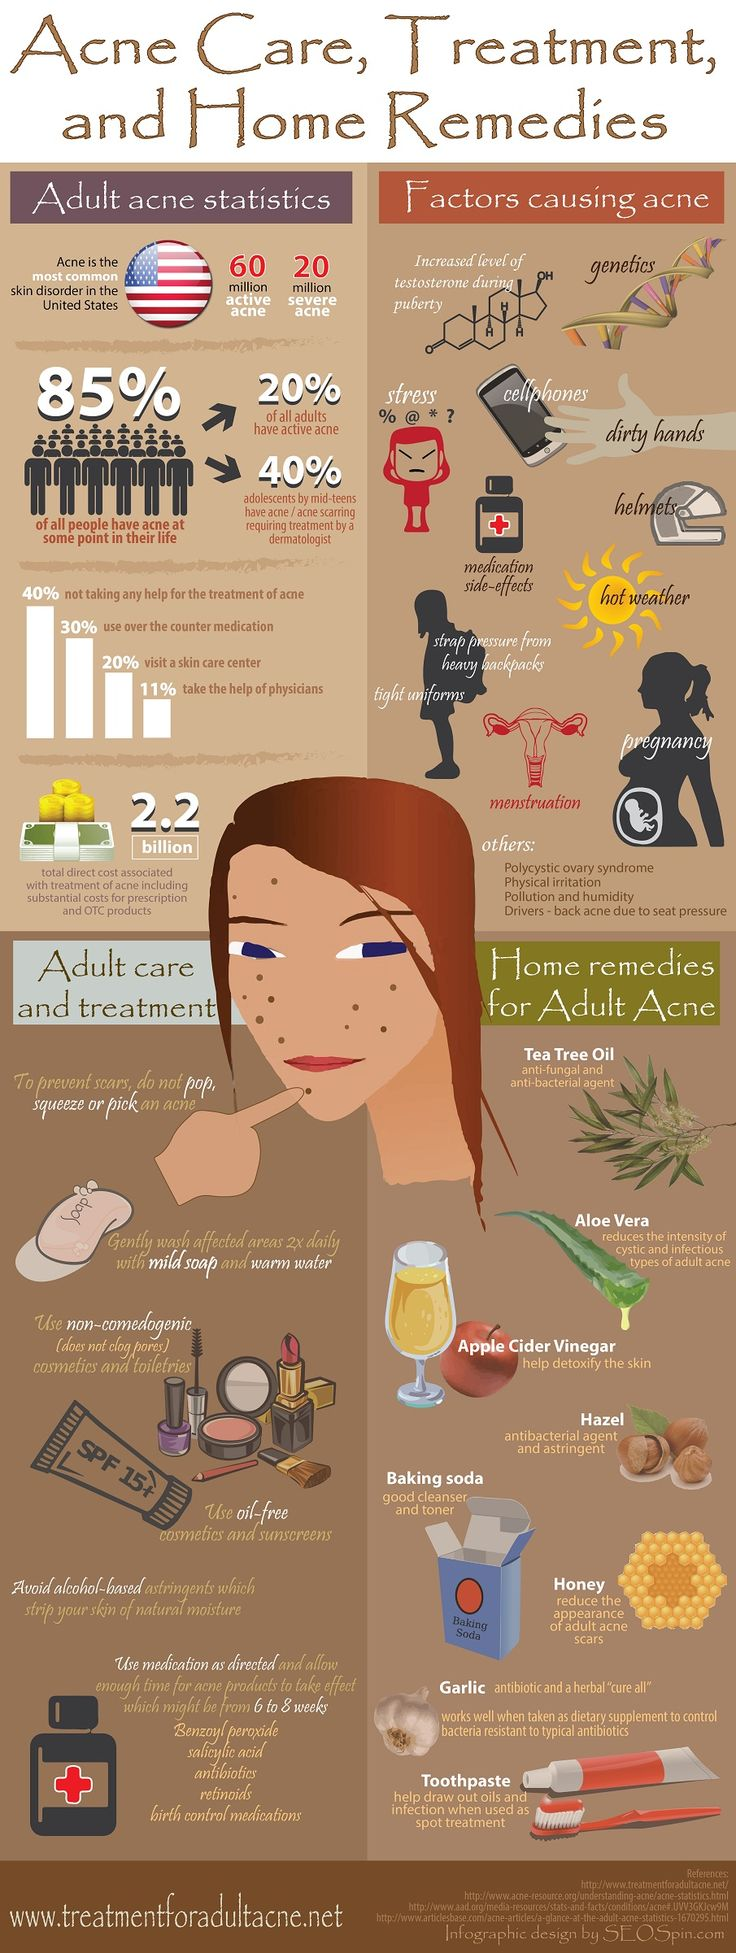 This is an infographic on Acne. Prevention really is the best medicine when it comes to acne. The most common type of adult acne can't be seen by the naked eye but it is the beginning stage of all forms of adult acne. Even people who adhere to a strict regimen of skin care can develop acne if they aren't careful.